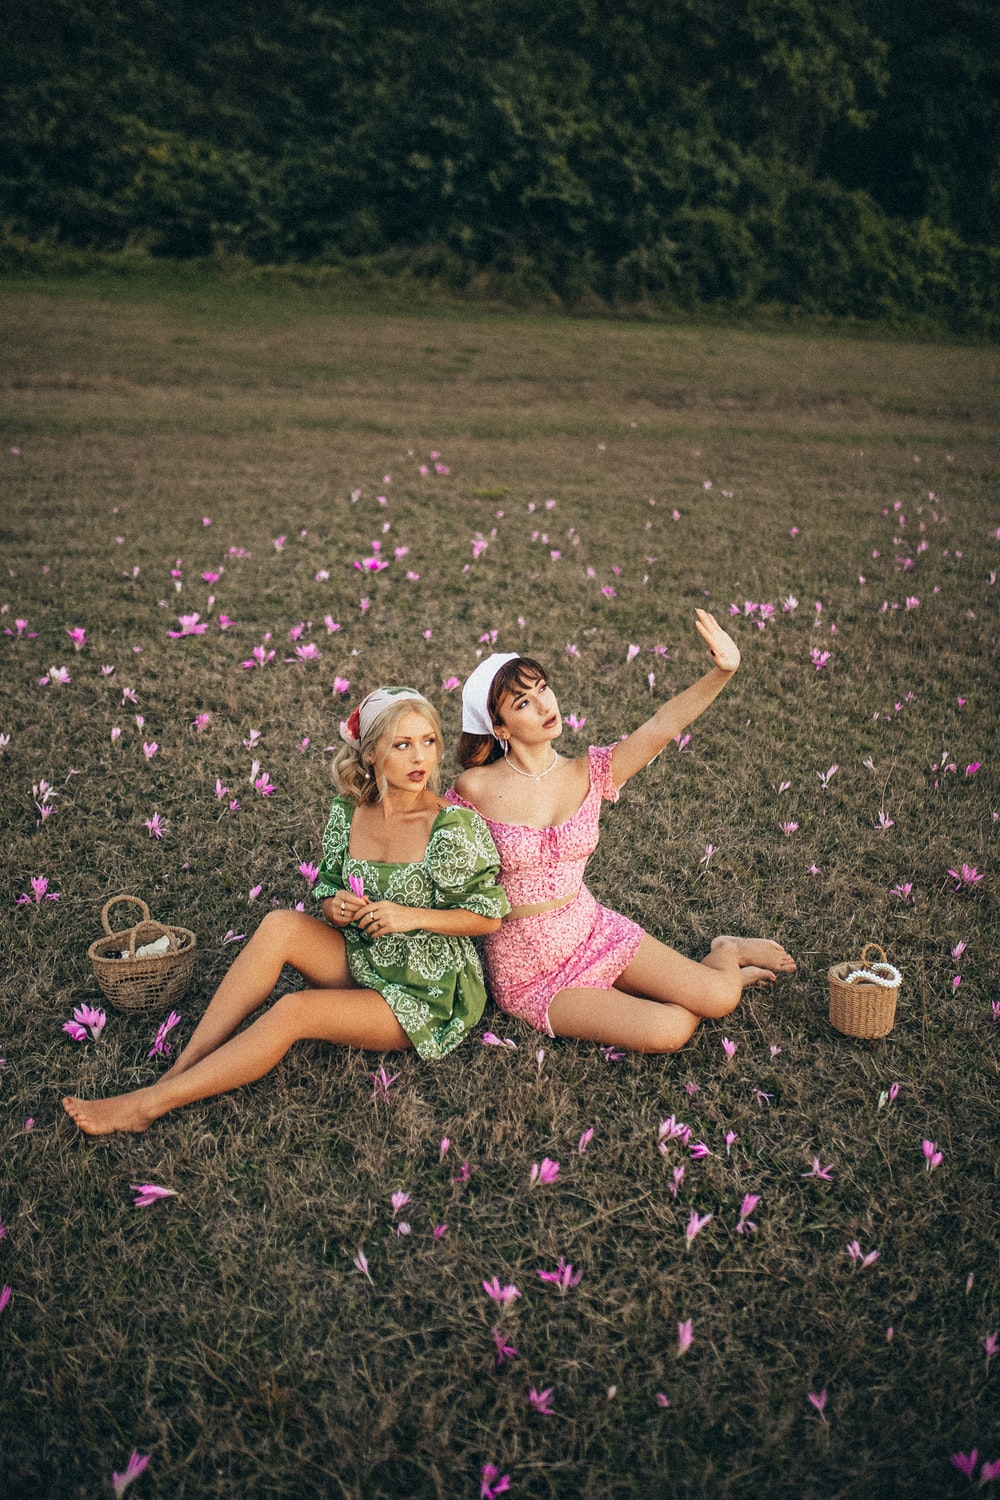 2 girls in pink and green floral dress lying on purple flower field